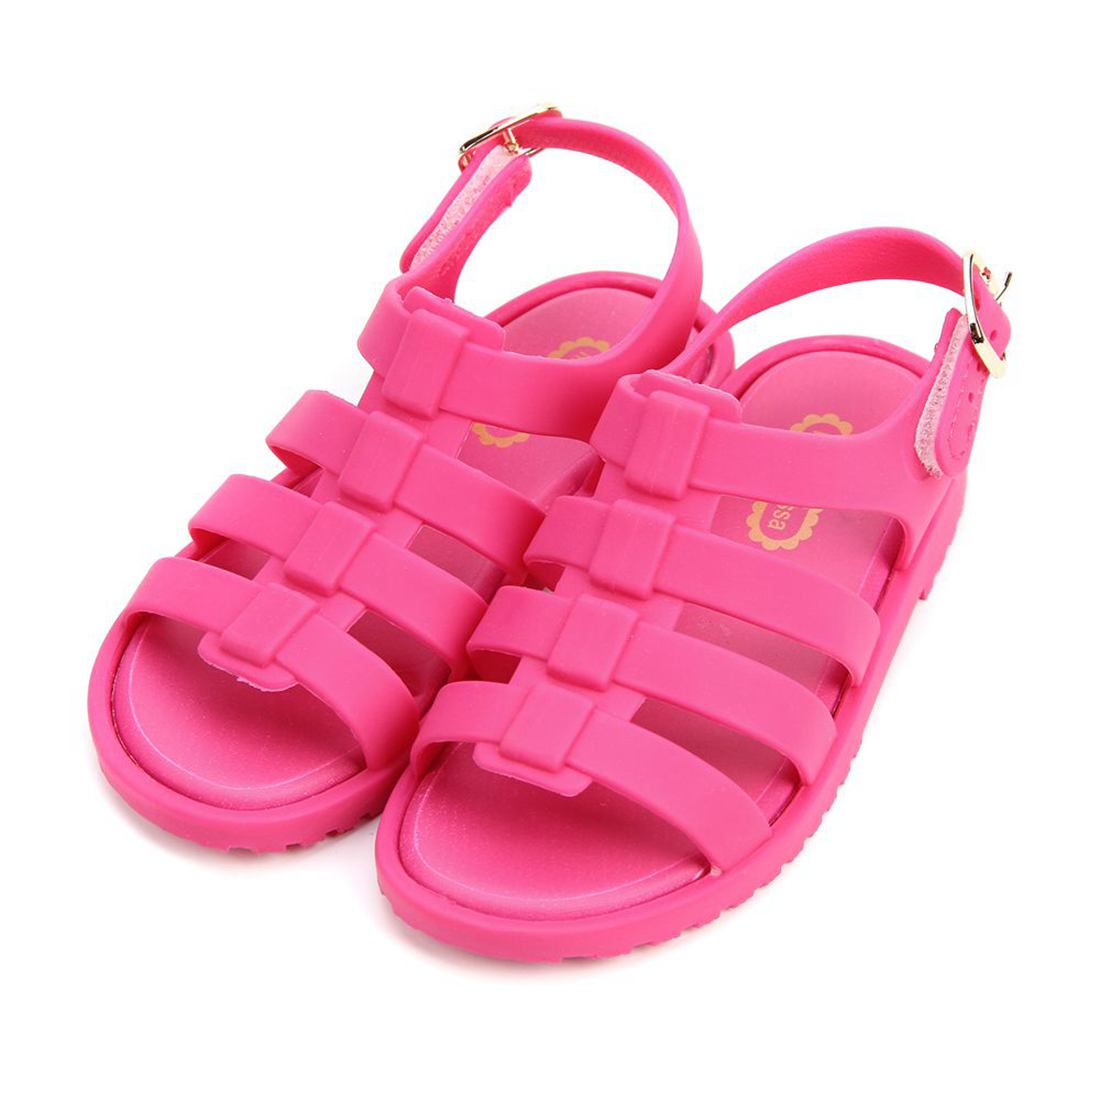 Melissa 2017 Summer New Roman Mini Shoes Girls Sandals Flox Kids Jelly Soft Insole PVC Shoe Flat-on Soft Bottom Non-Slip